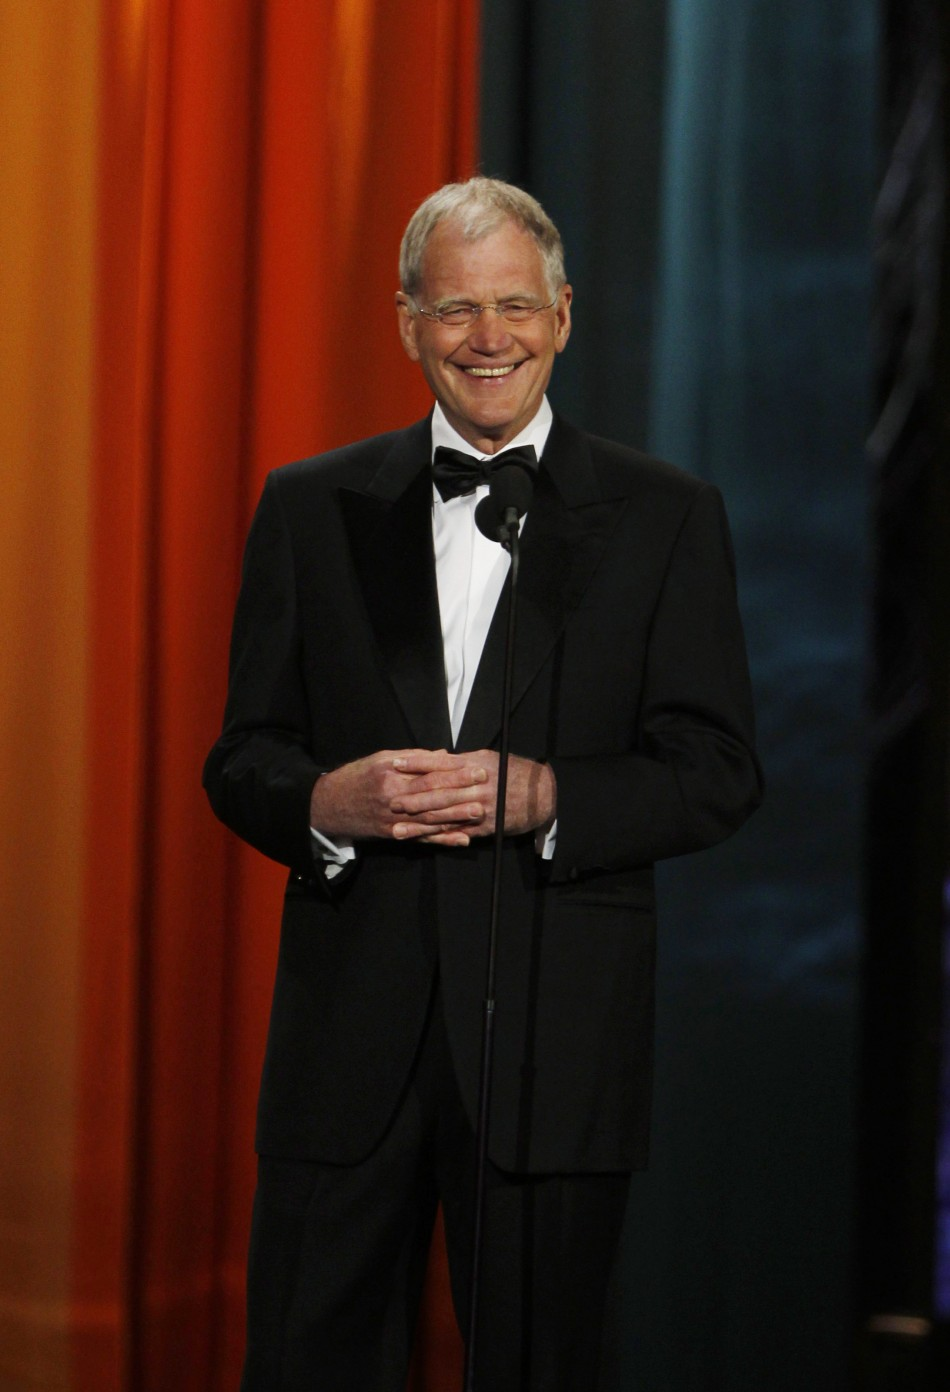 Late night television host David Letterman